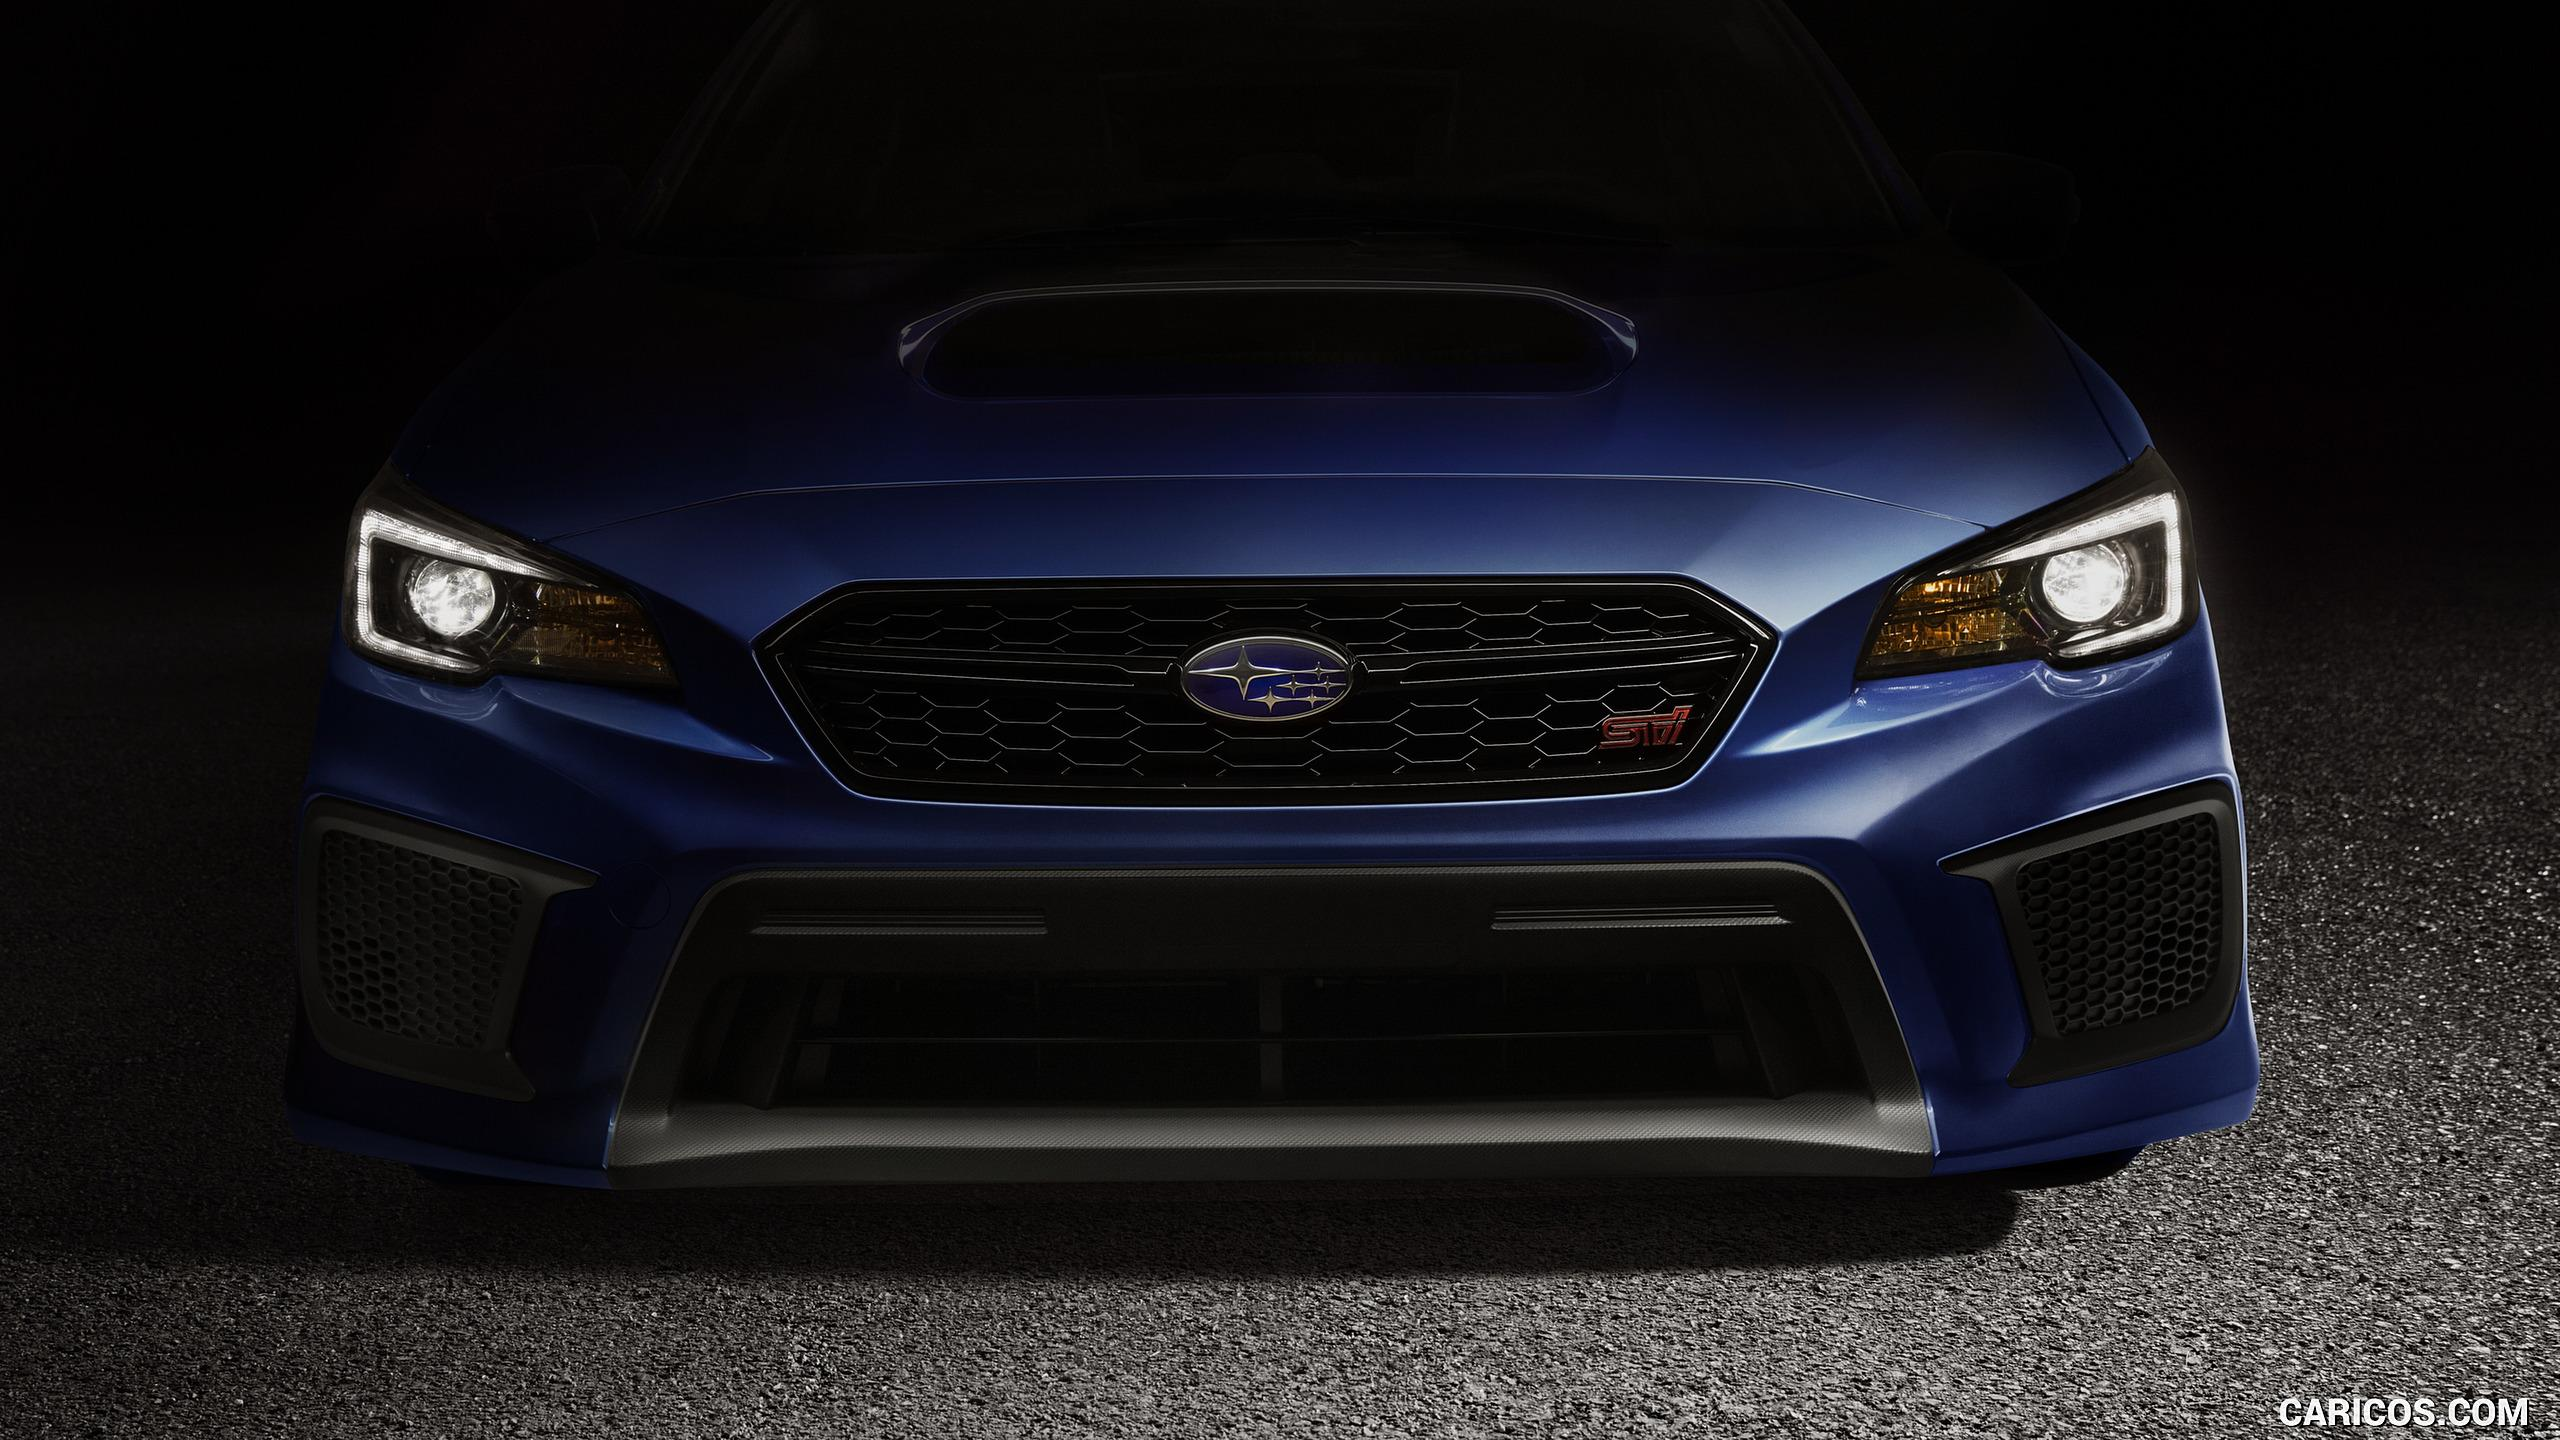 2018 Subaru WRX STI - Front | HD Wallpaper #8